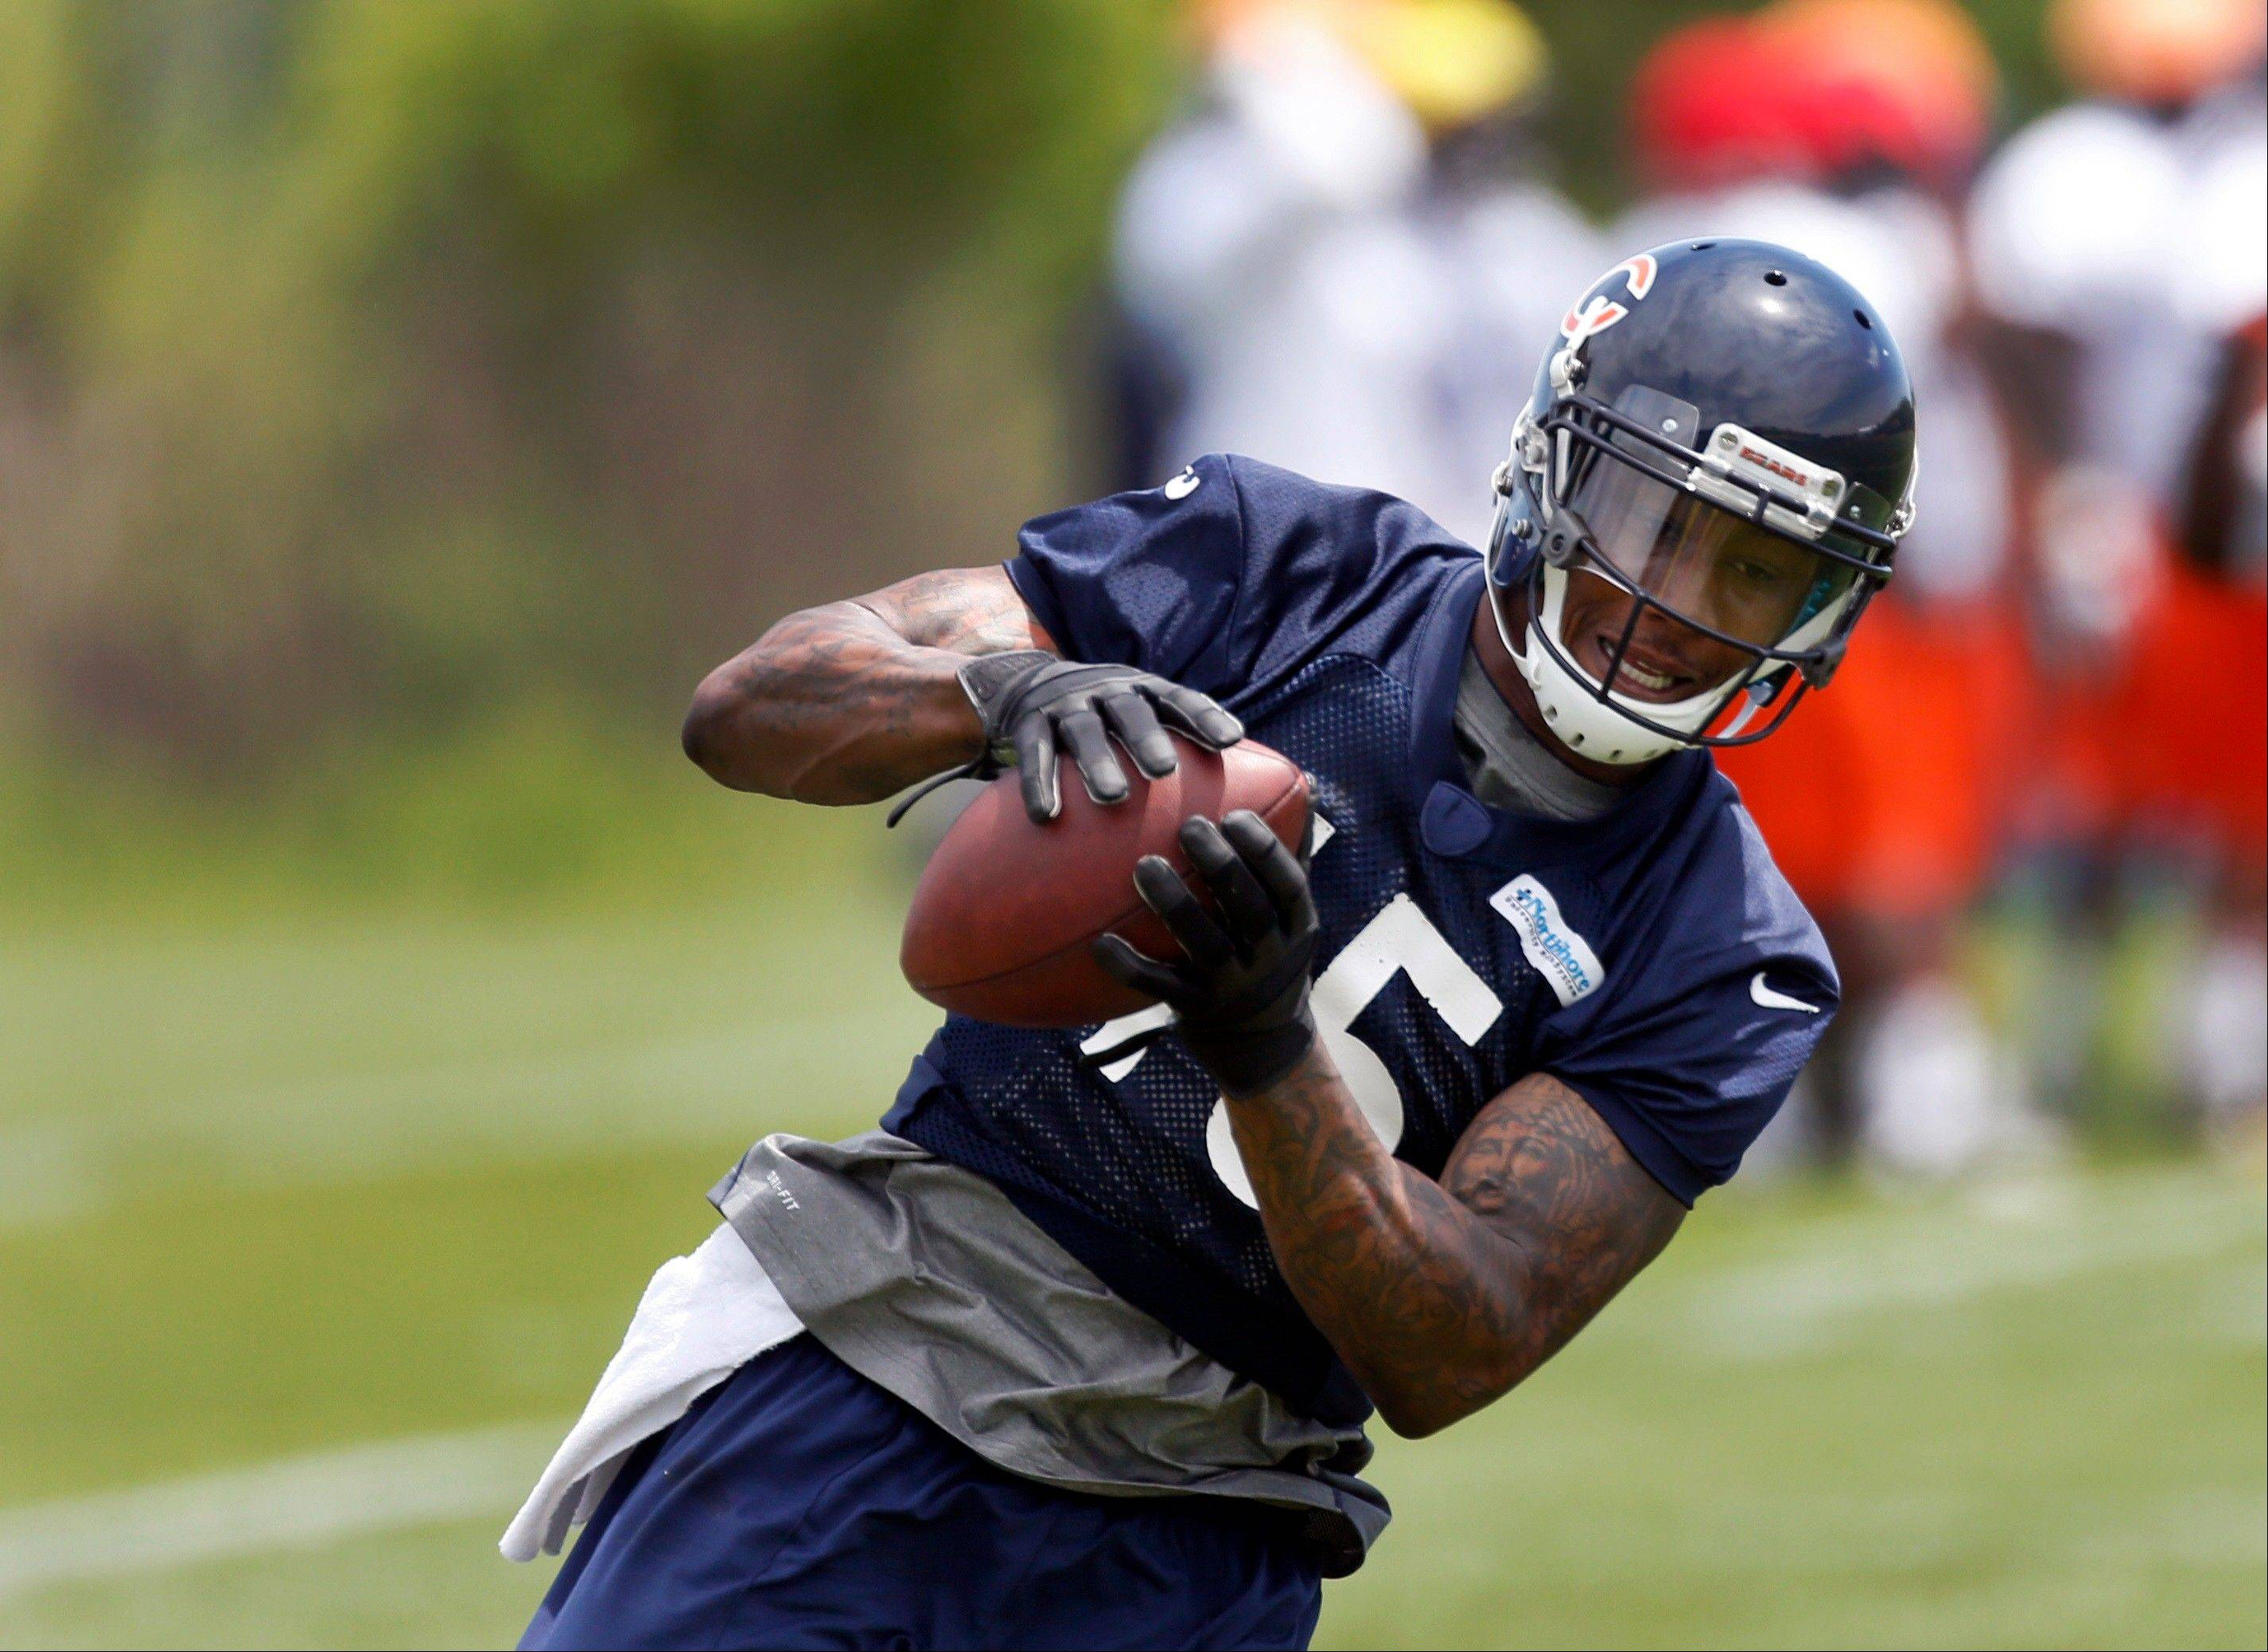 Chicago Bears wide receiver Brandon Marshall catches a pass during the Bears' NFL football practice Tuesday, June 4, 2013, in Lake Forest, Ill. Marshall returned to the field after his rehabilitation from hip surgery.